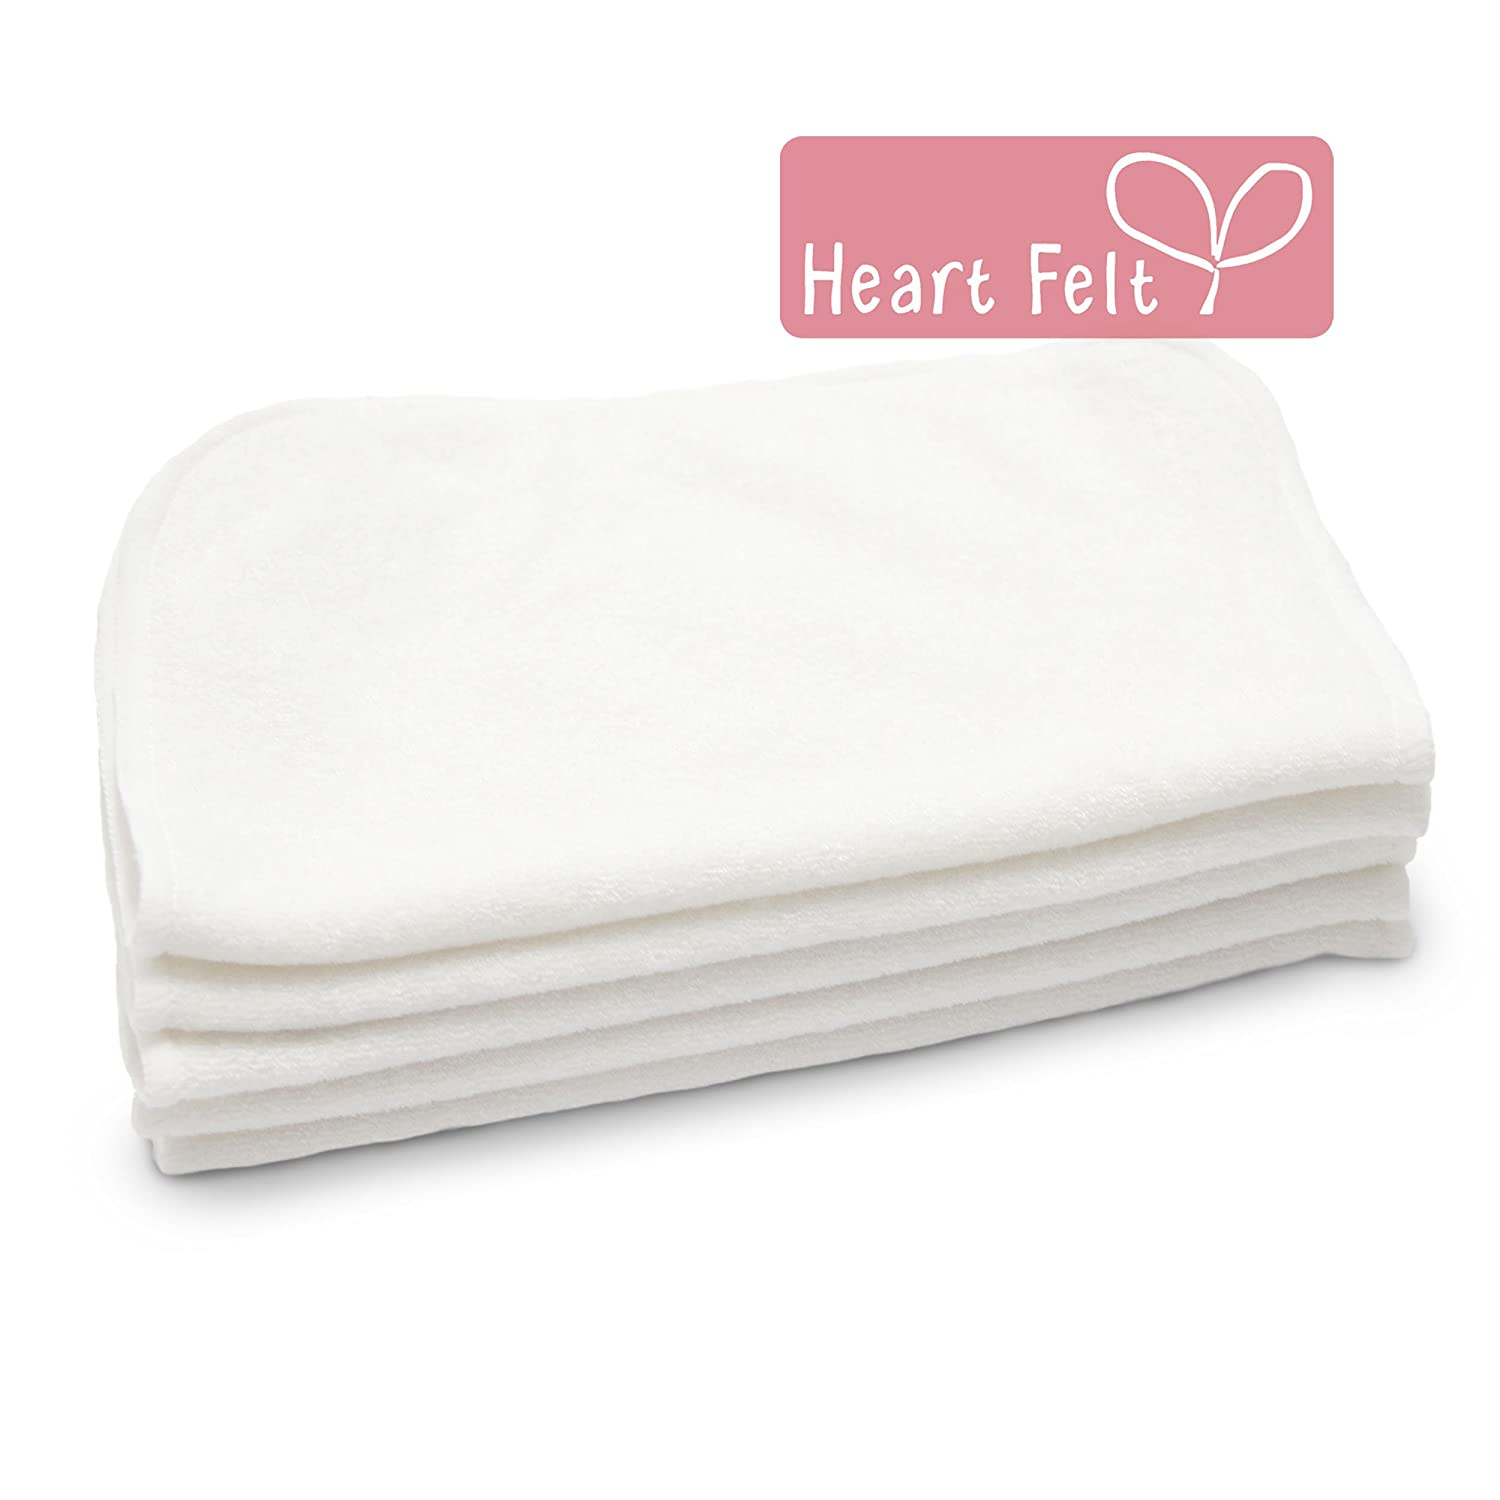 Heart Felt 100% Natural Baby Wipes - 5 Extra-large Reusable Wipes for Wipes, Wash Cloths and Dribble Bibs. Versatile, Soft and Gentle on Baby's Skin.